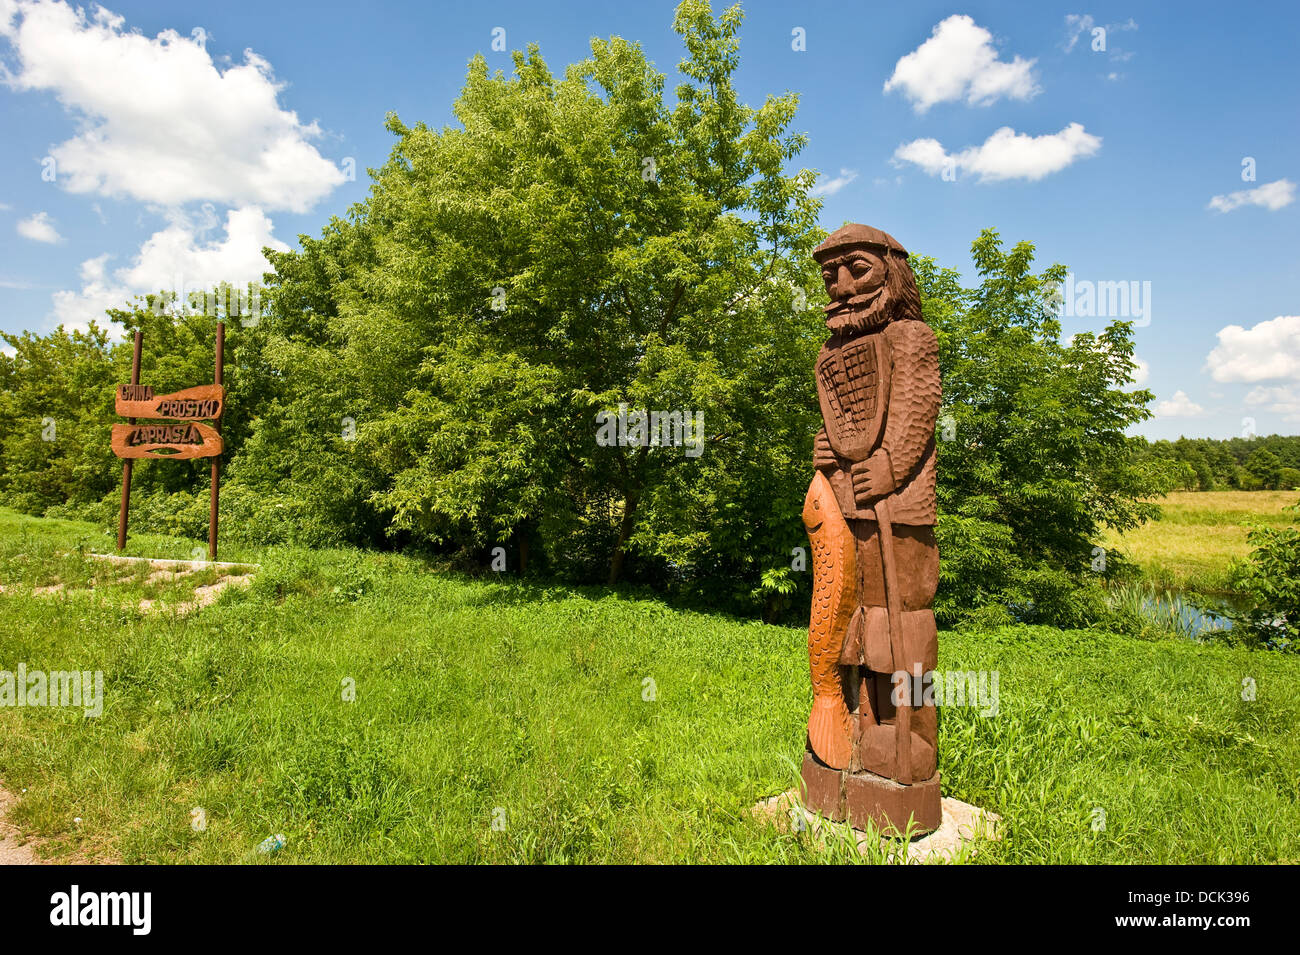 Wooden sculpture of a fisherman in a village in north-eastern part of Poland. - Stock Image